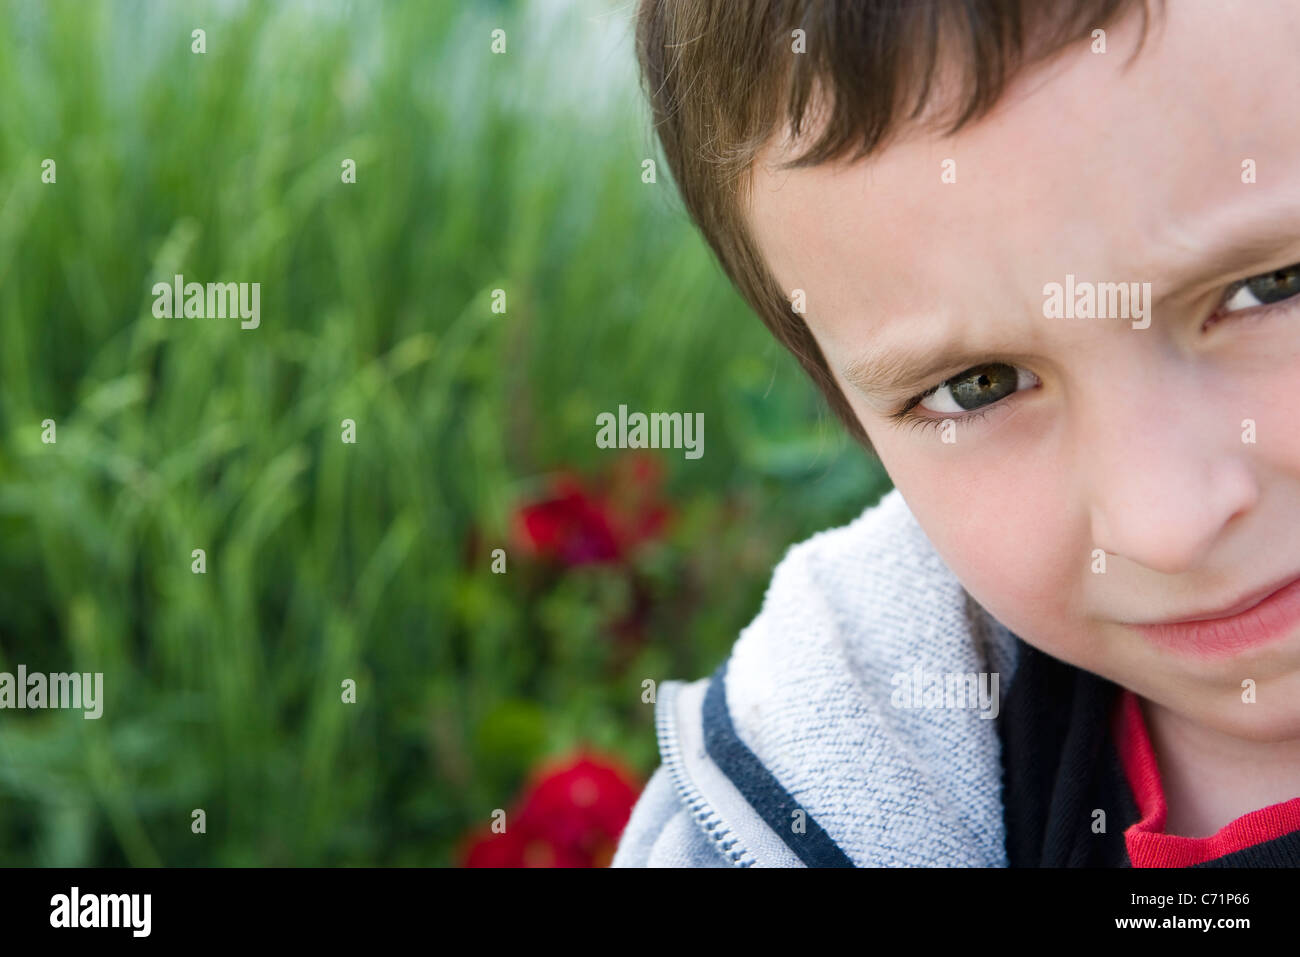 Boy looking at camera with furrowed brow, portrait - Stock Image